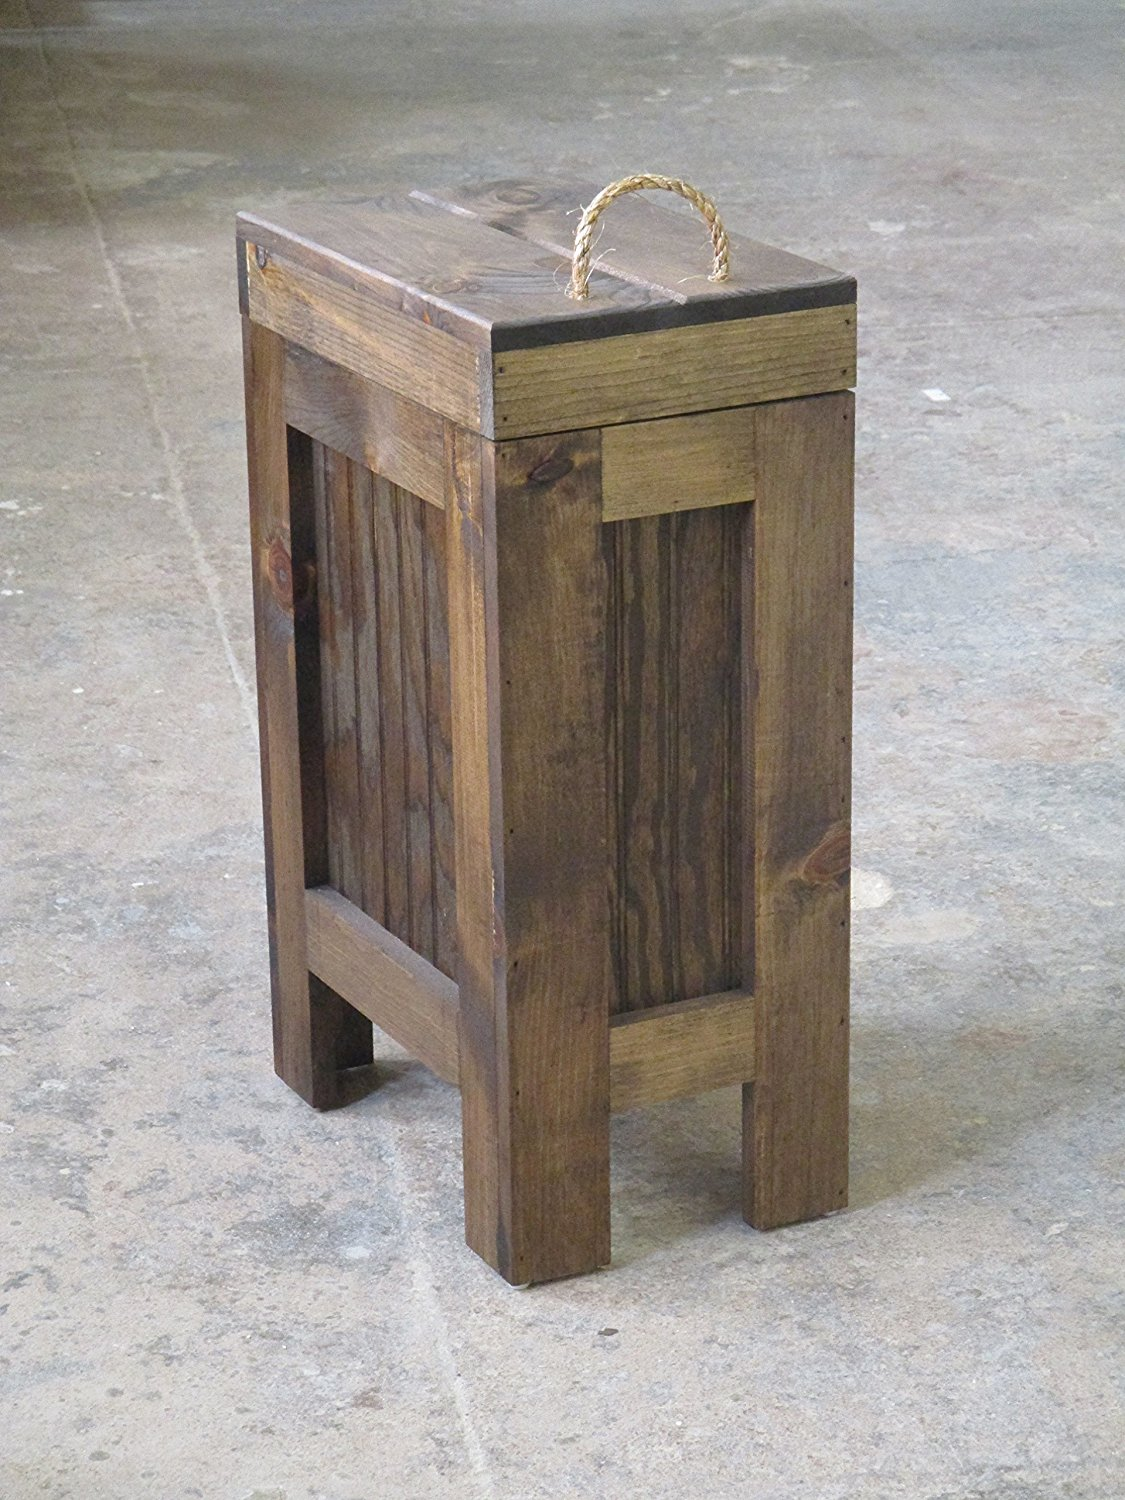 Wood Trash Can Kitchen Garbage Can,Rustic Wood Trash Bin,Colonial Pine w//Rope